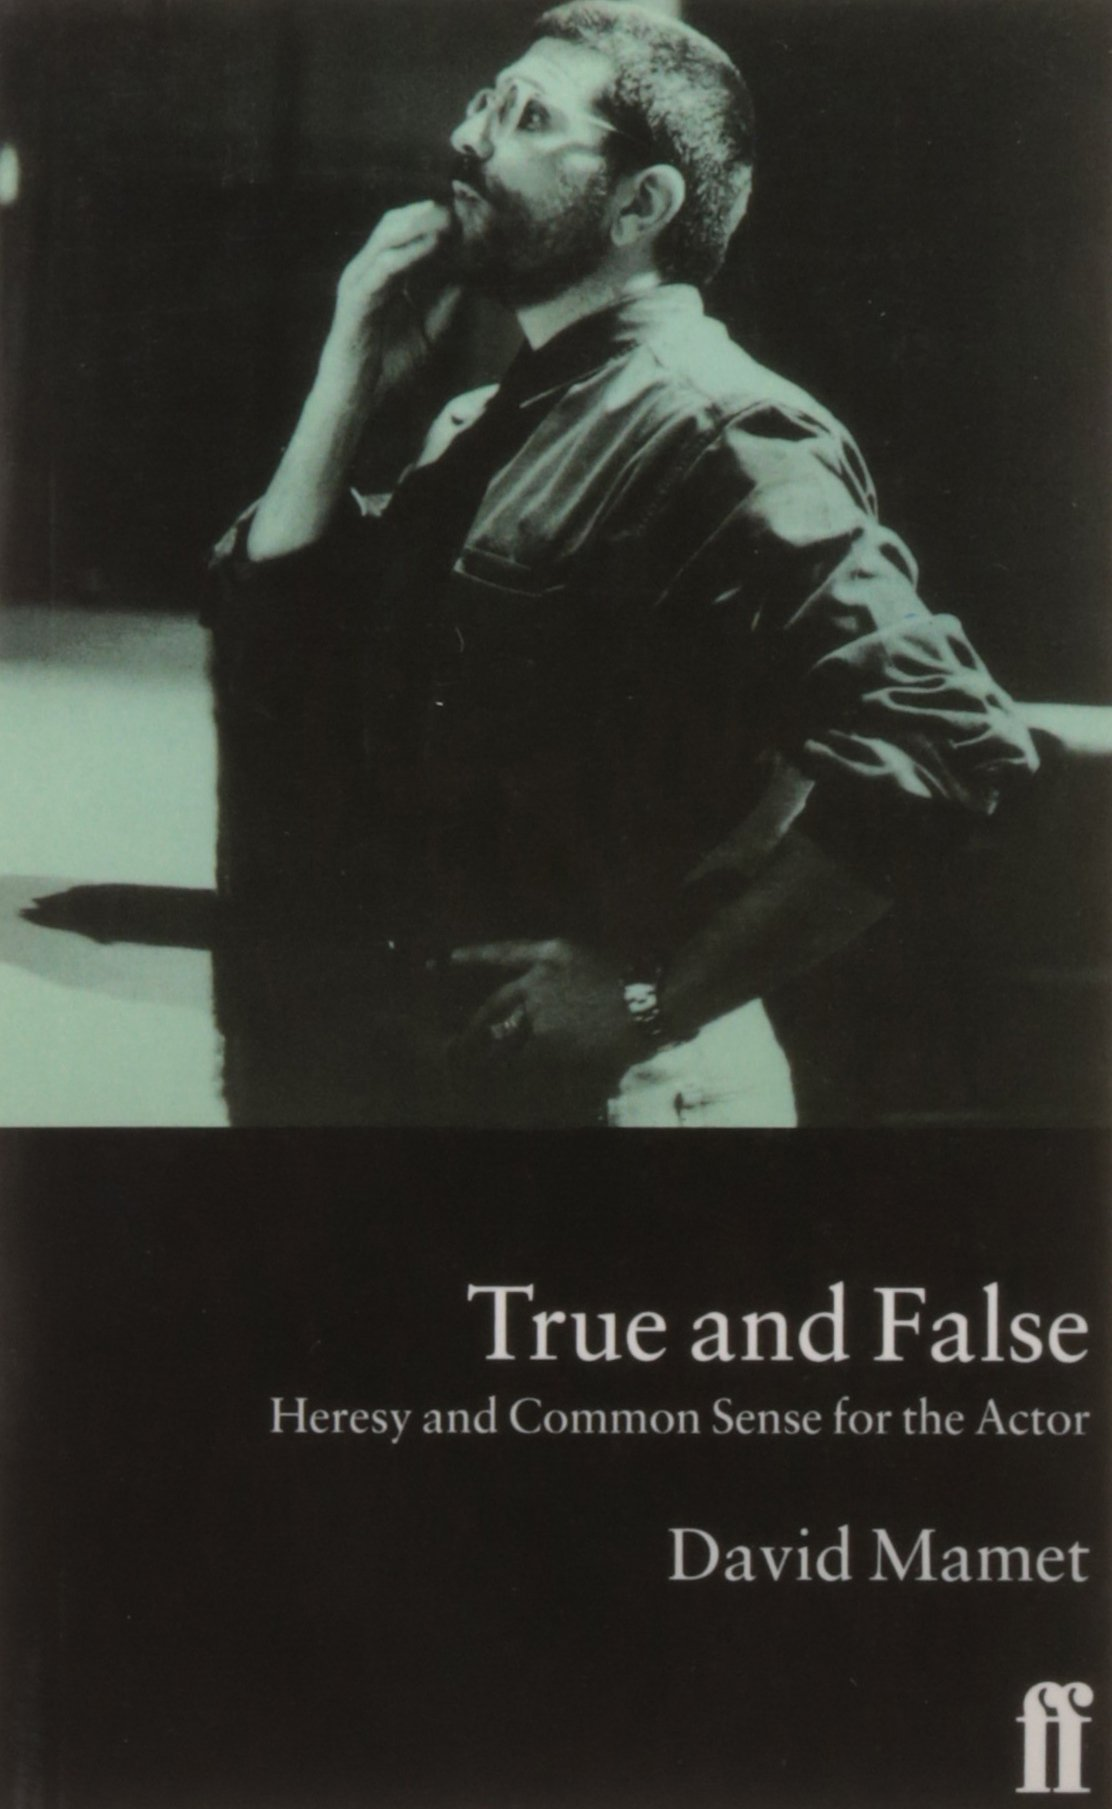 a whore s profession notes and essays amazon co uk david mamet true and false heresy and common sense for the actor